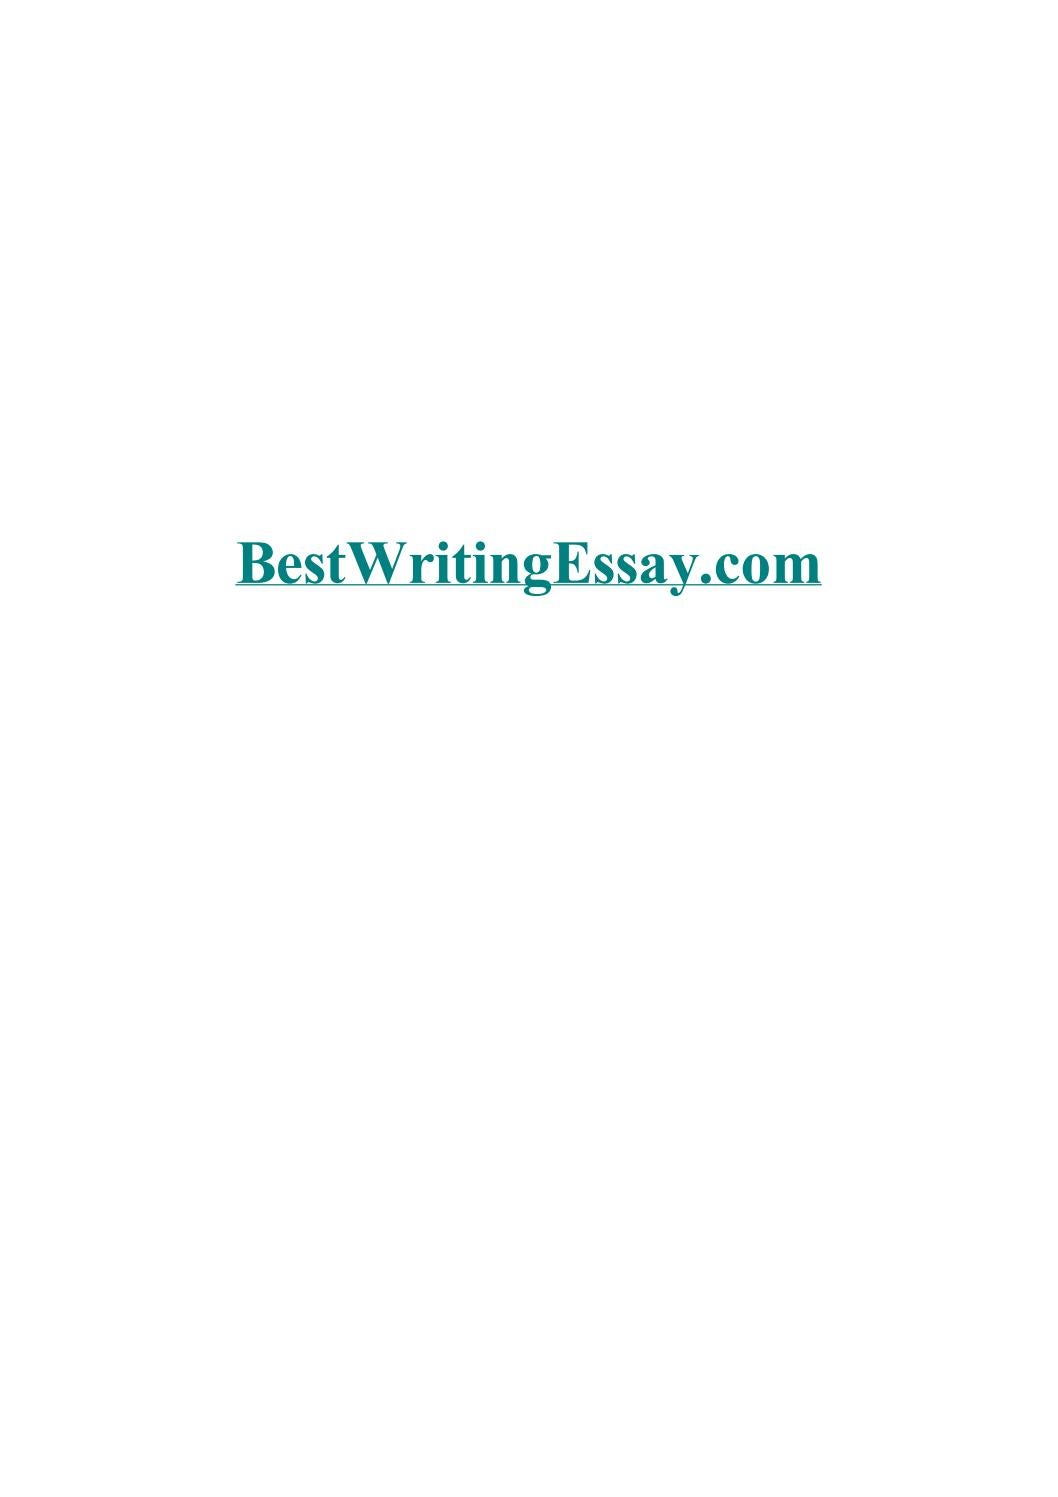 Education Essay Example  Forgiveness Essays also My Favorite Book Essay Good Essay Topics For High School Students By Cherrieeieai  A Clean Well Lighted Place Essay